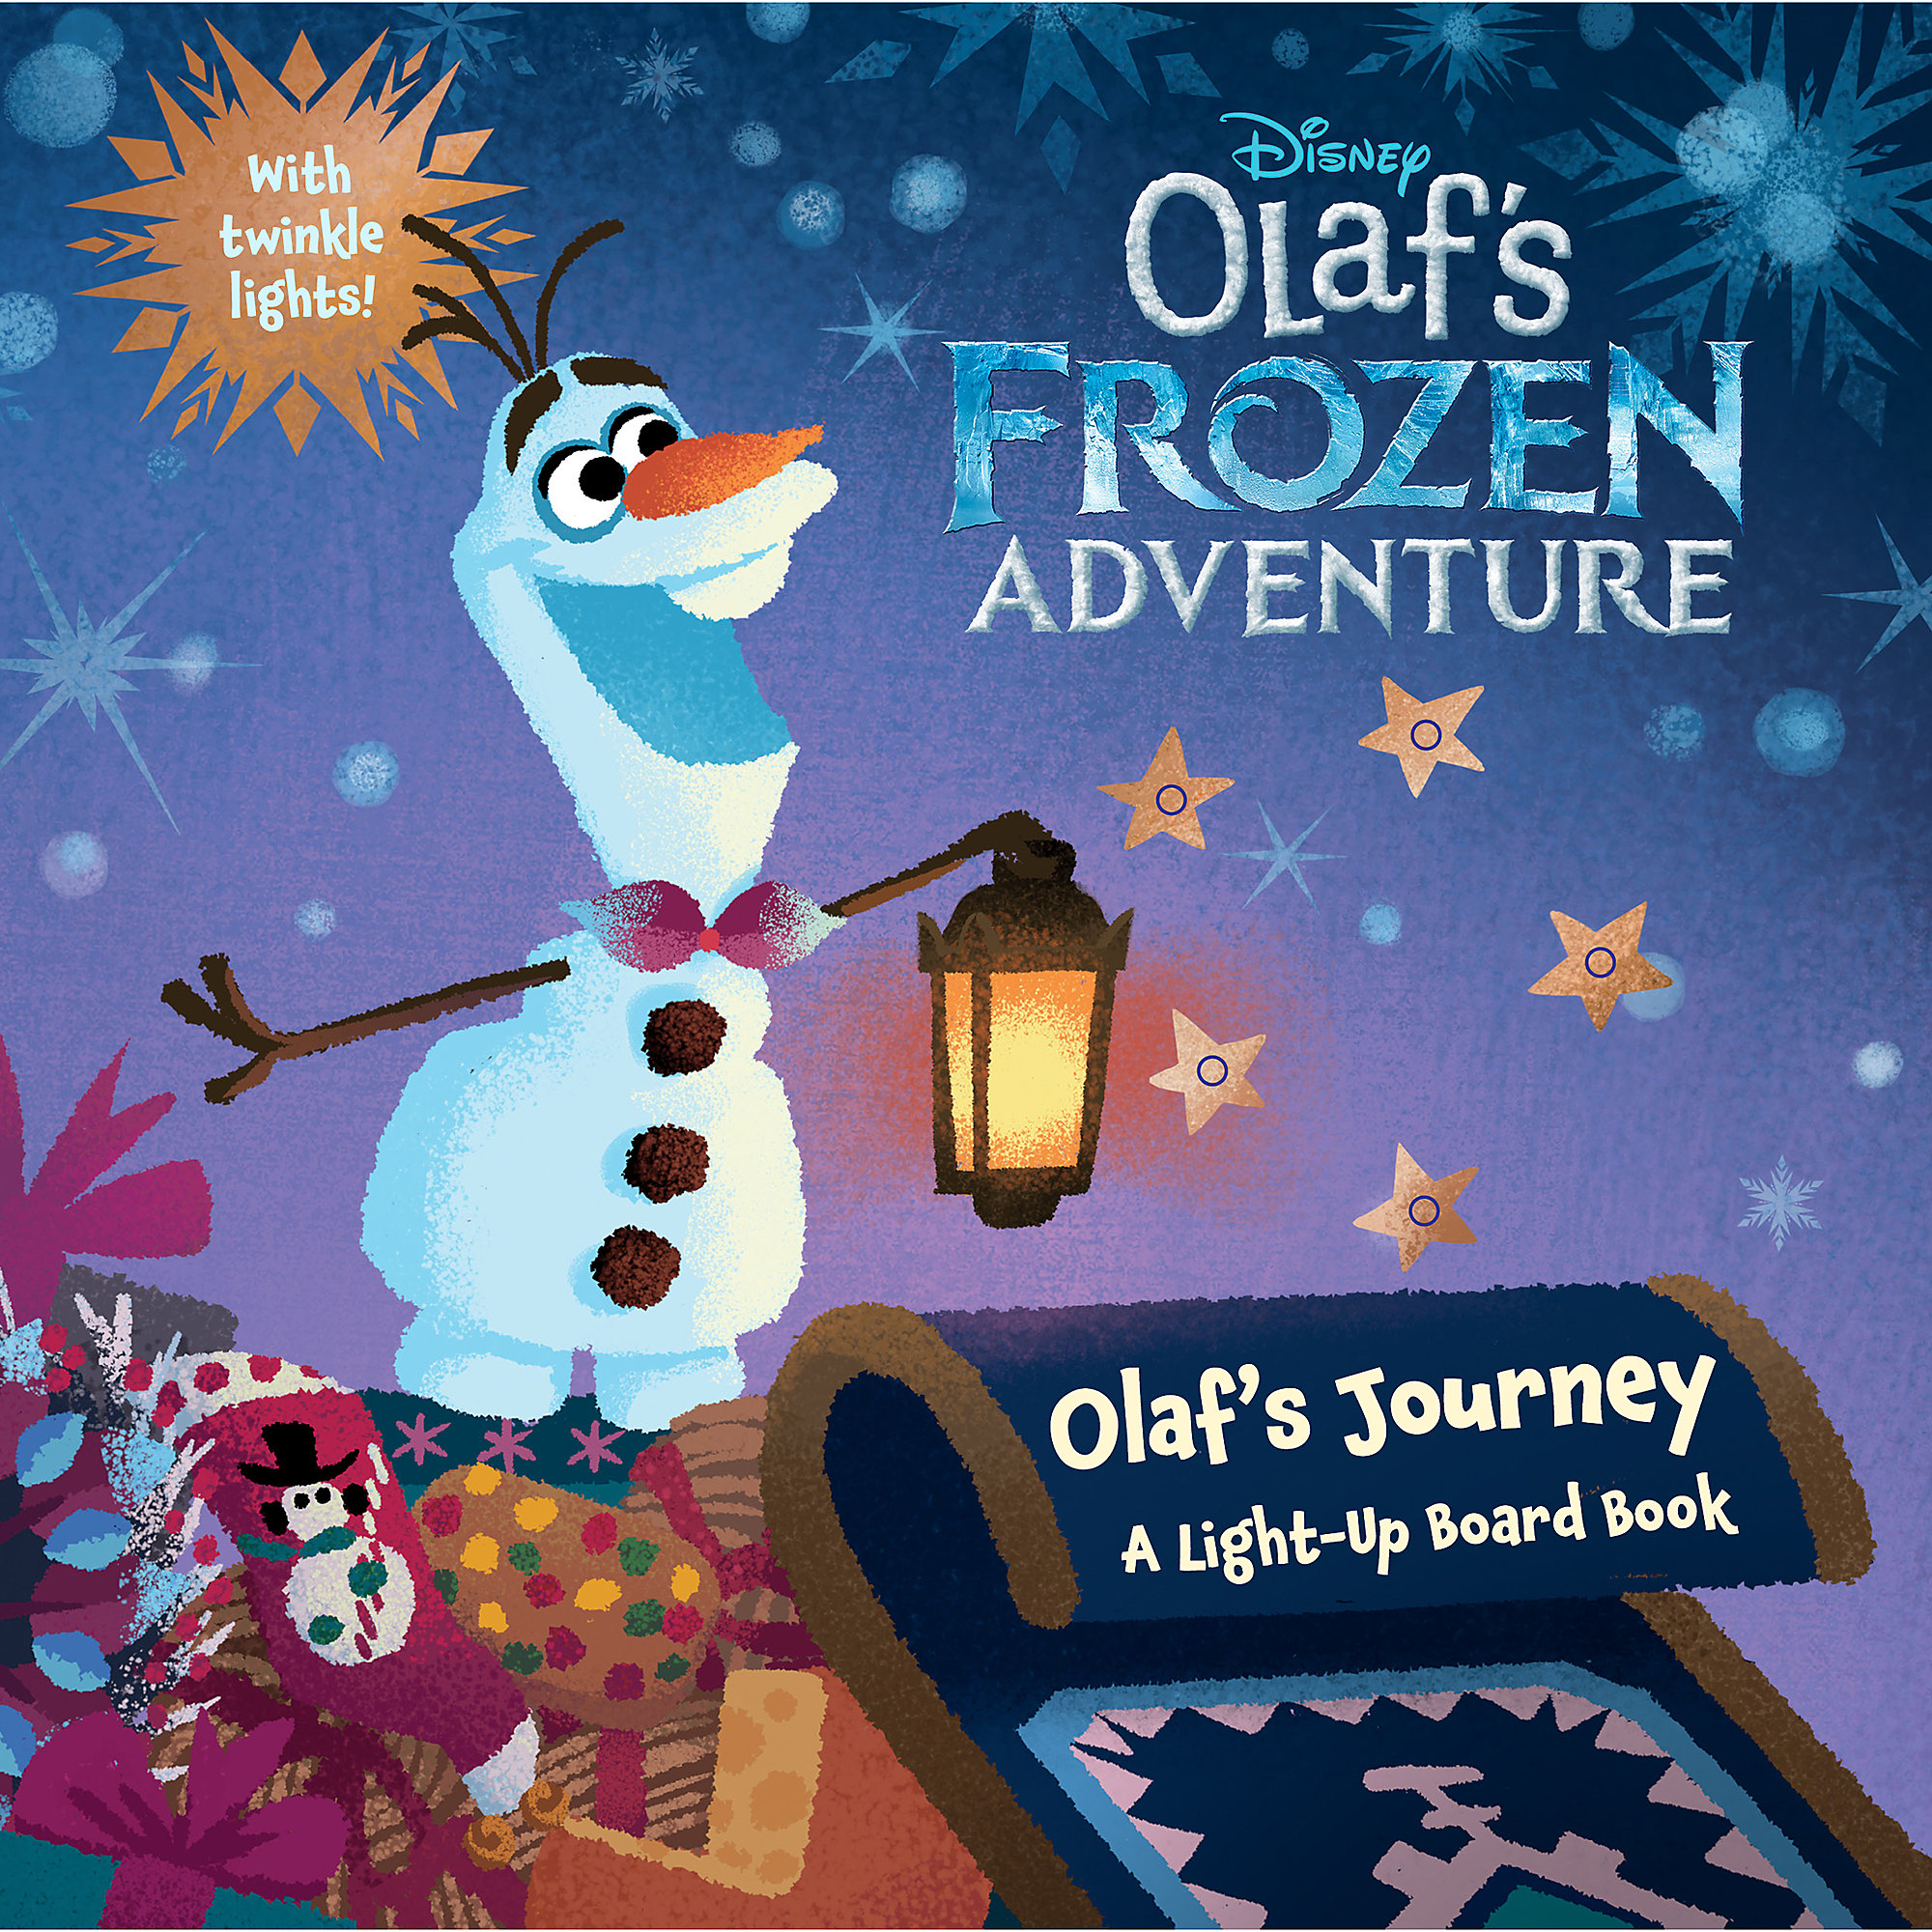 Olafs Frozen Adventure Journey A Light Up Board Book